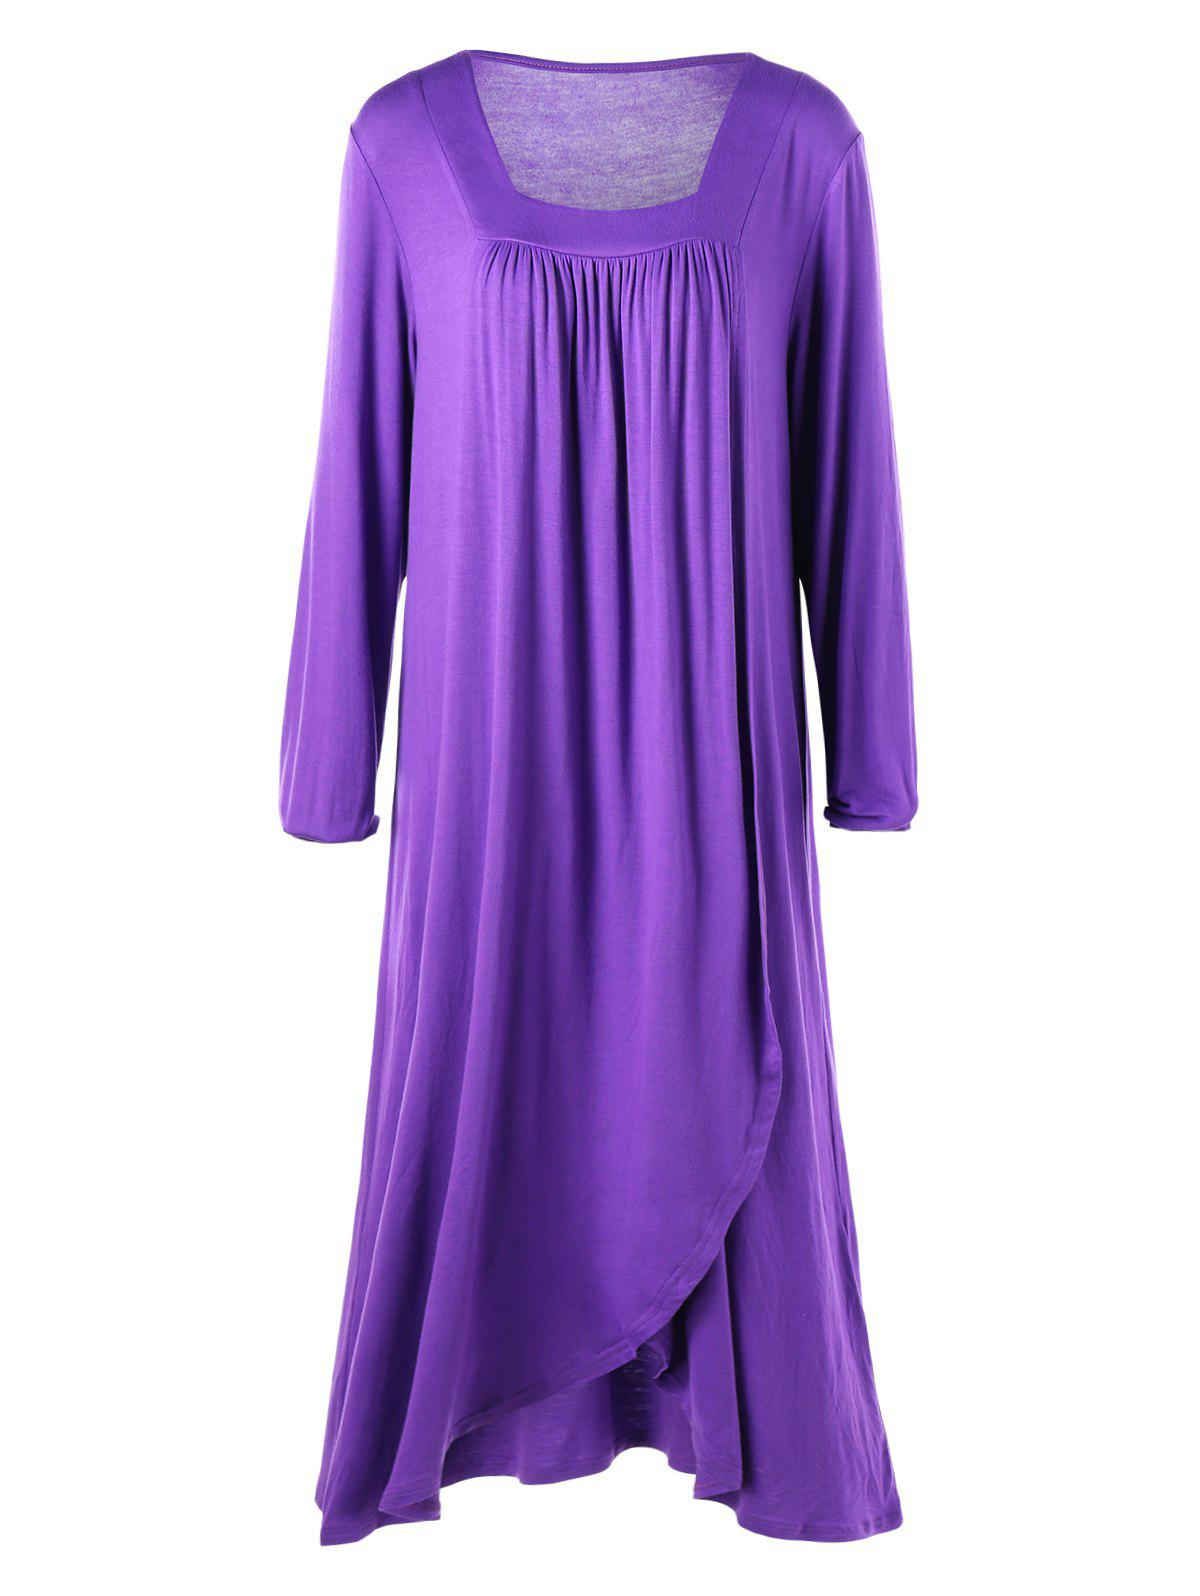 Plus Size Asymmetrical Midi T-shirt Dress - PURPLE XL